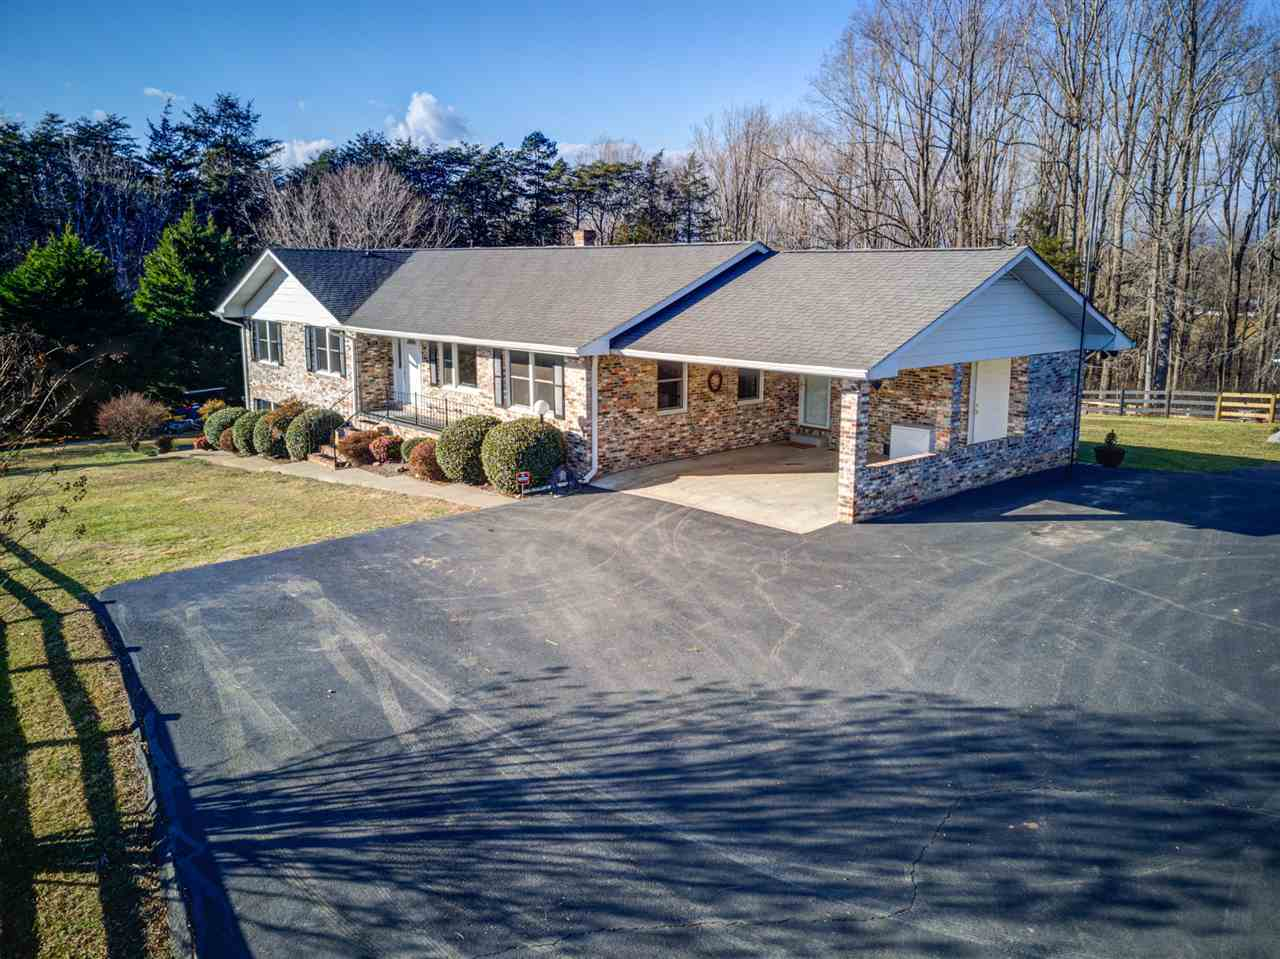 $400,000 - 5Br/4Ba -  for Sale in Dawsonville, Barboursville